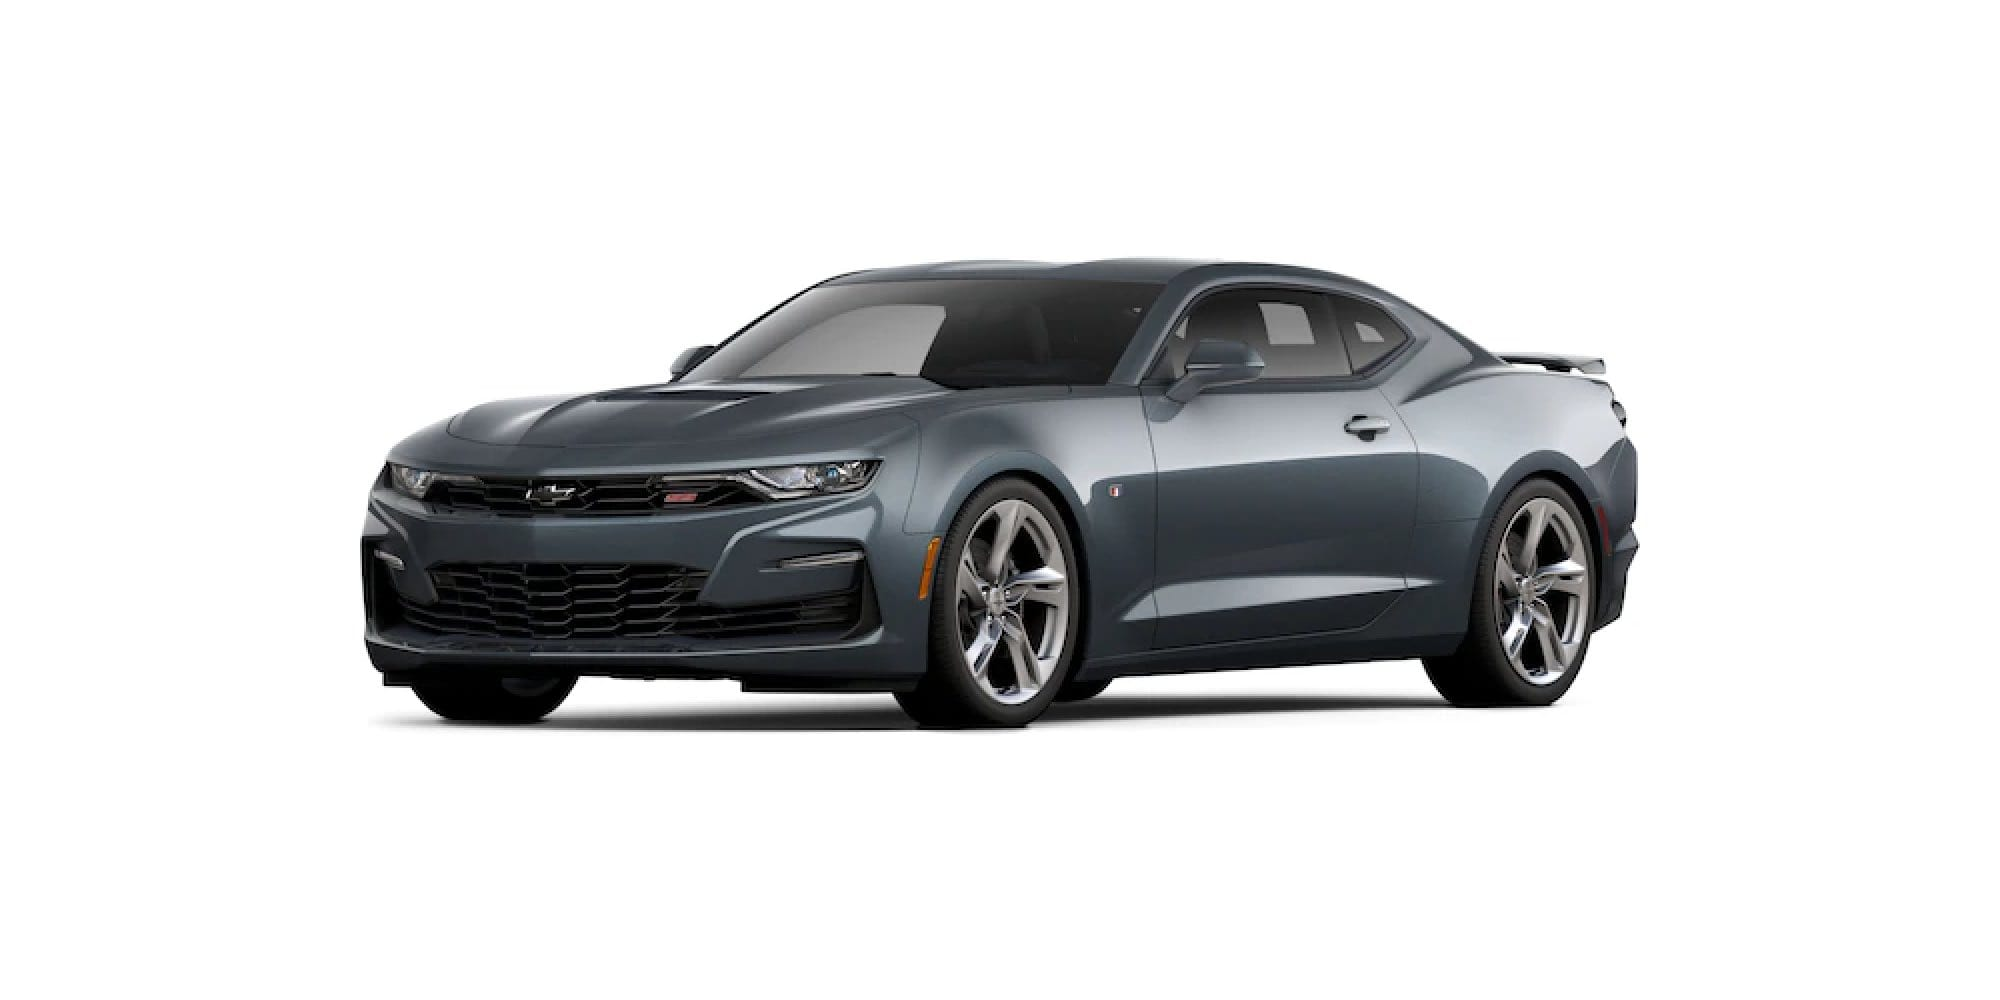 Shadow Gray Metallic Camaro